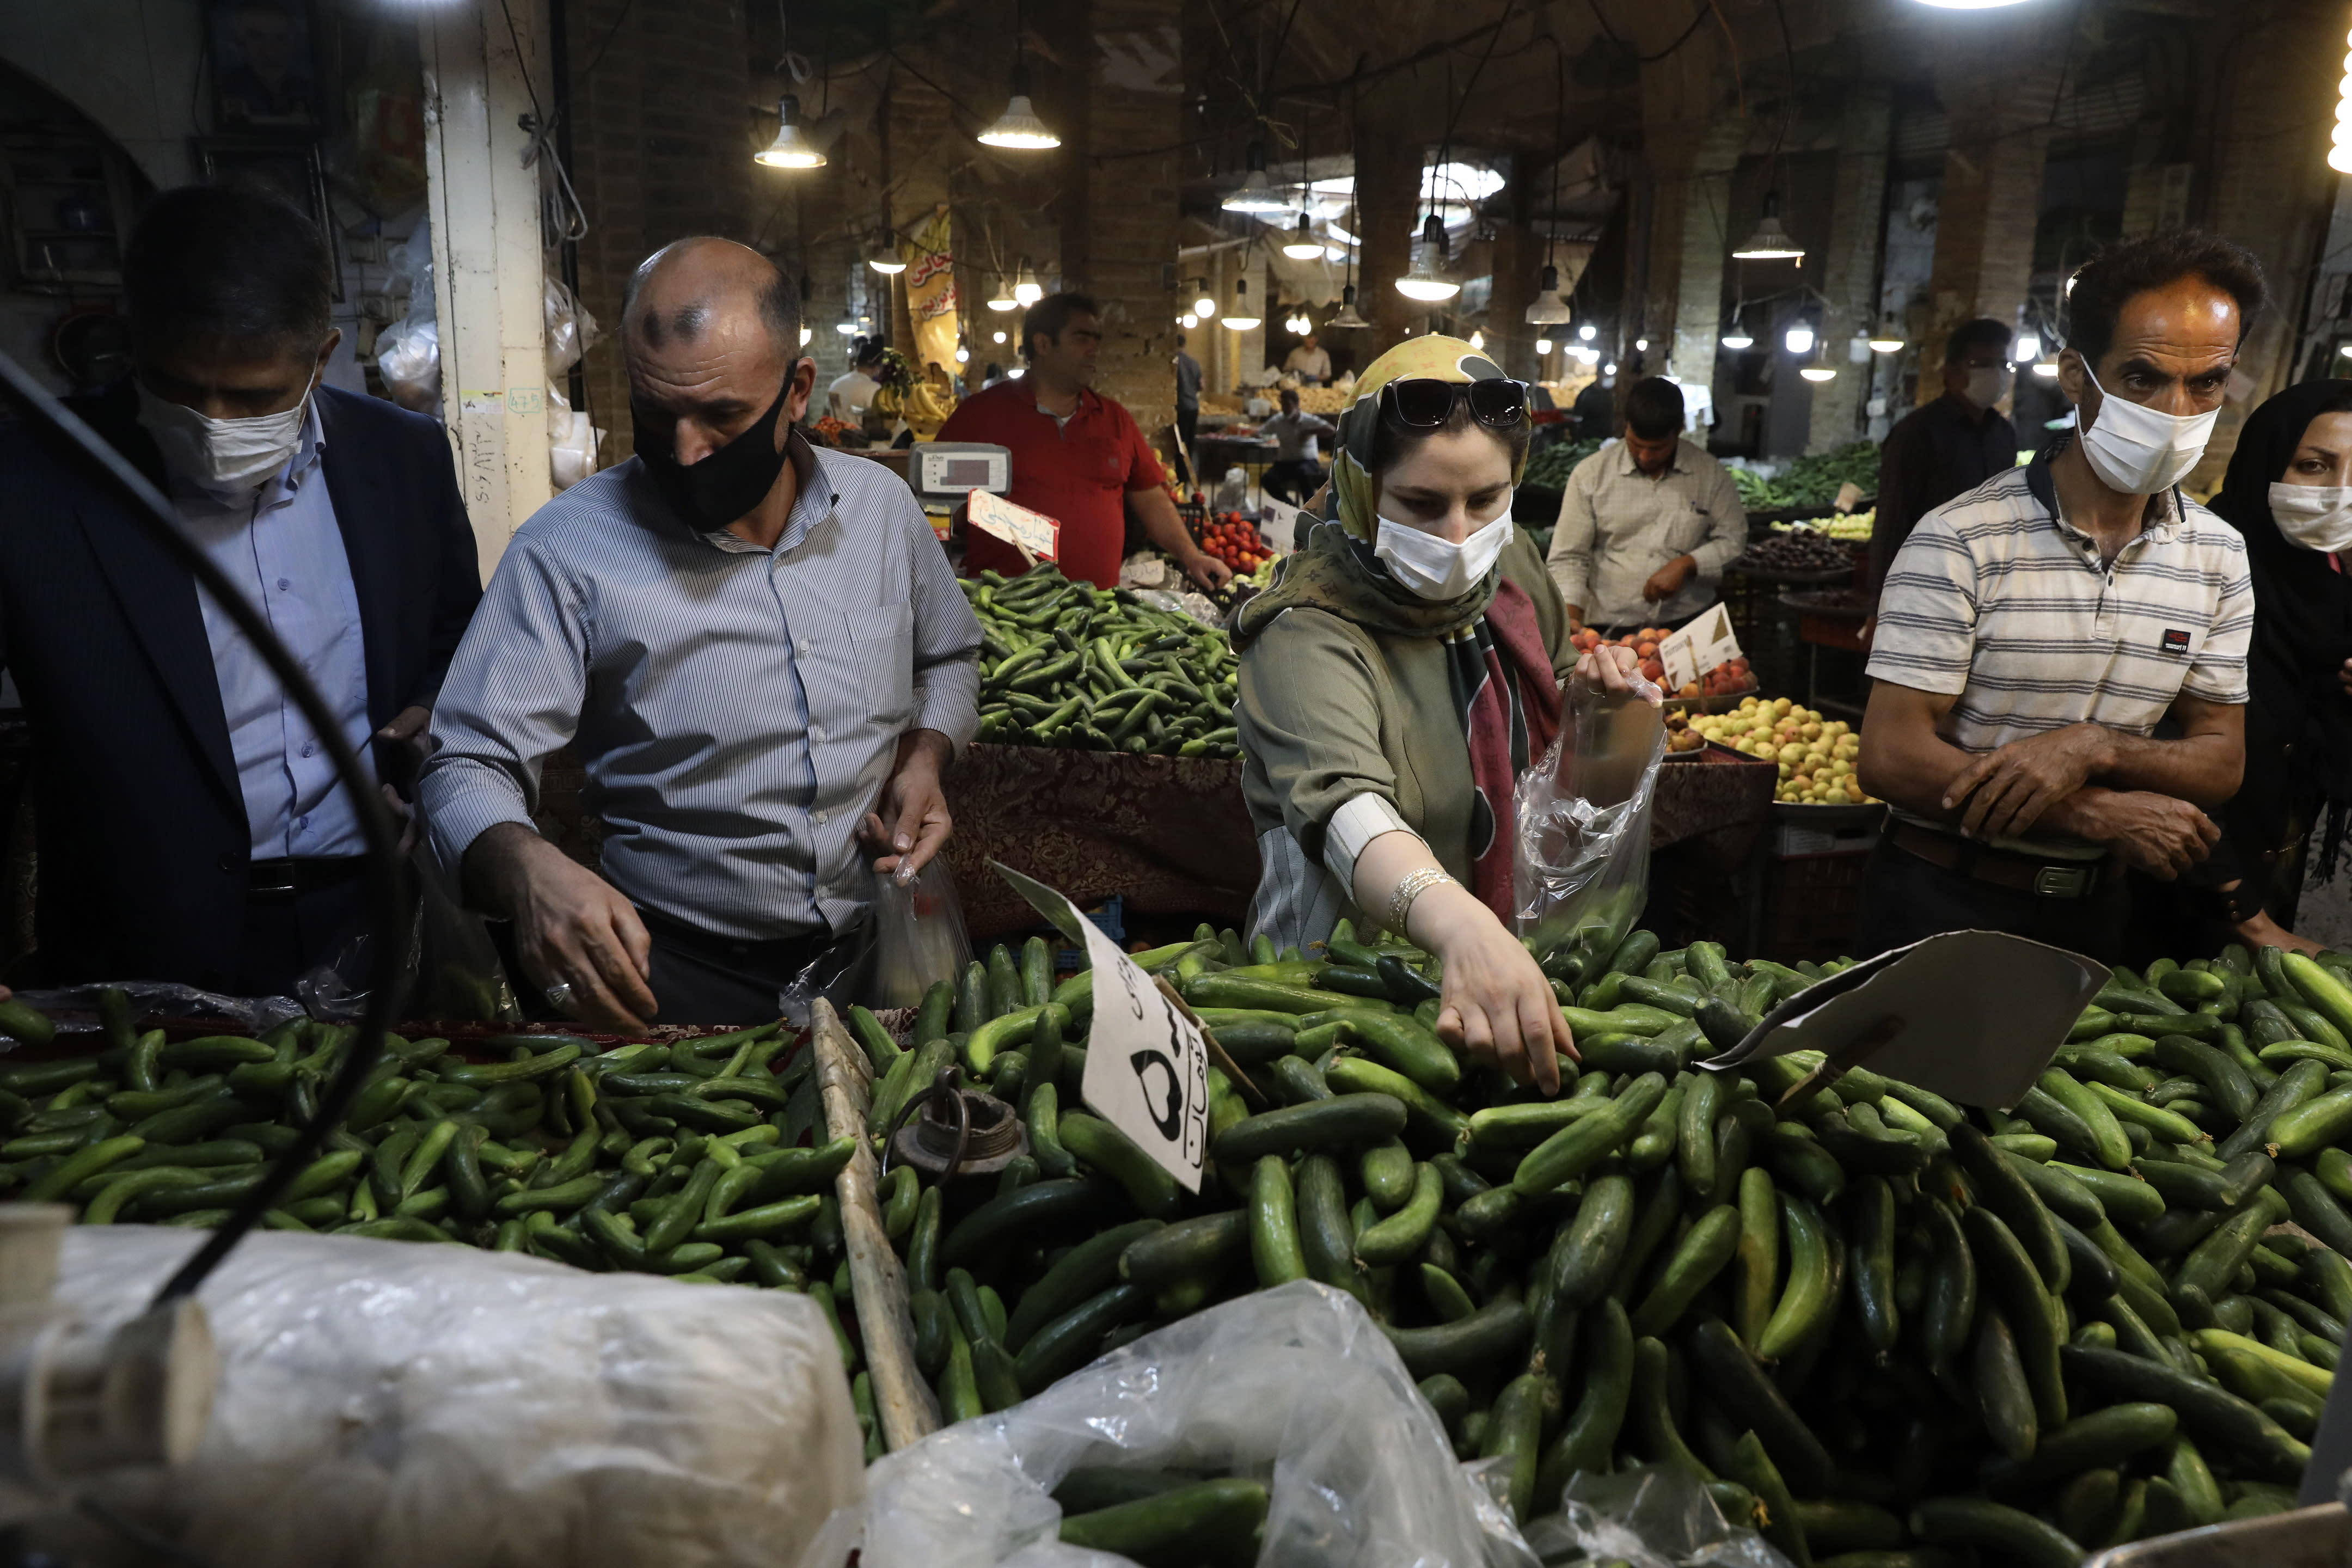 People wearing face masks to help prevent the spread of the coronavirus shop at the old grand bazaar of the city of Zanjan, some 330 kilometers (205 miles) west of the capital Tehran, Iran, Sunday, July 5, 2020. Iran on Sunday instituted mandatory mask-wearing as fears mount over newly spiking reported deaths from the coronavirus, even as its public increasingly shrugs off the danger of the COVID-19 illness it causes. (AP Photo/Vahid Salemi)